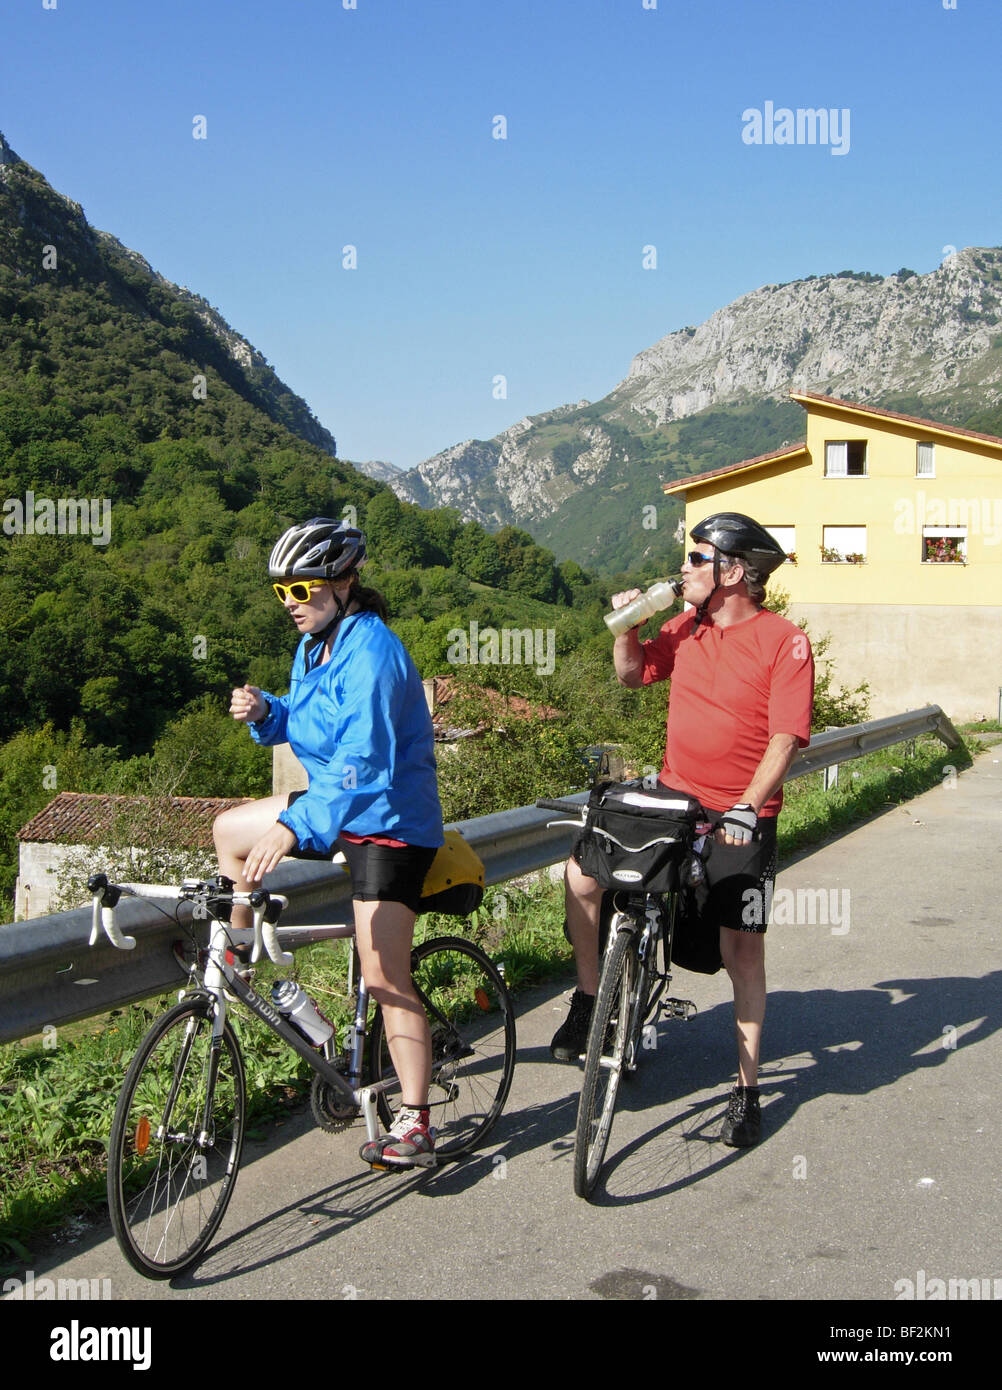 Cyclists Taking A Break On A Bicycle Road Trip Through The Picos De